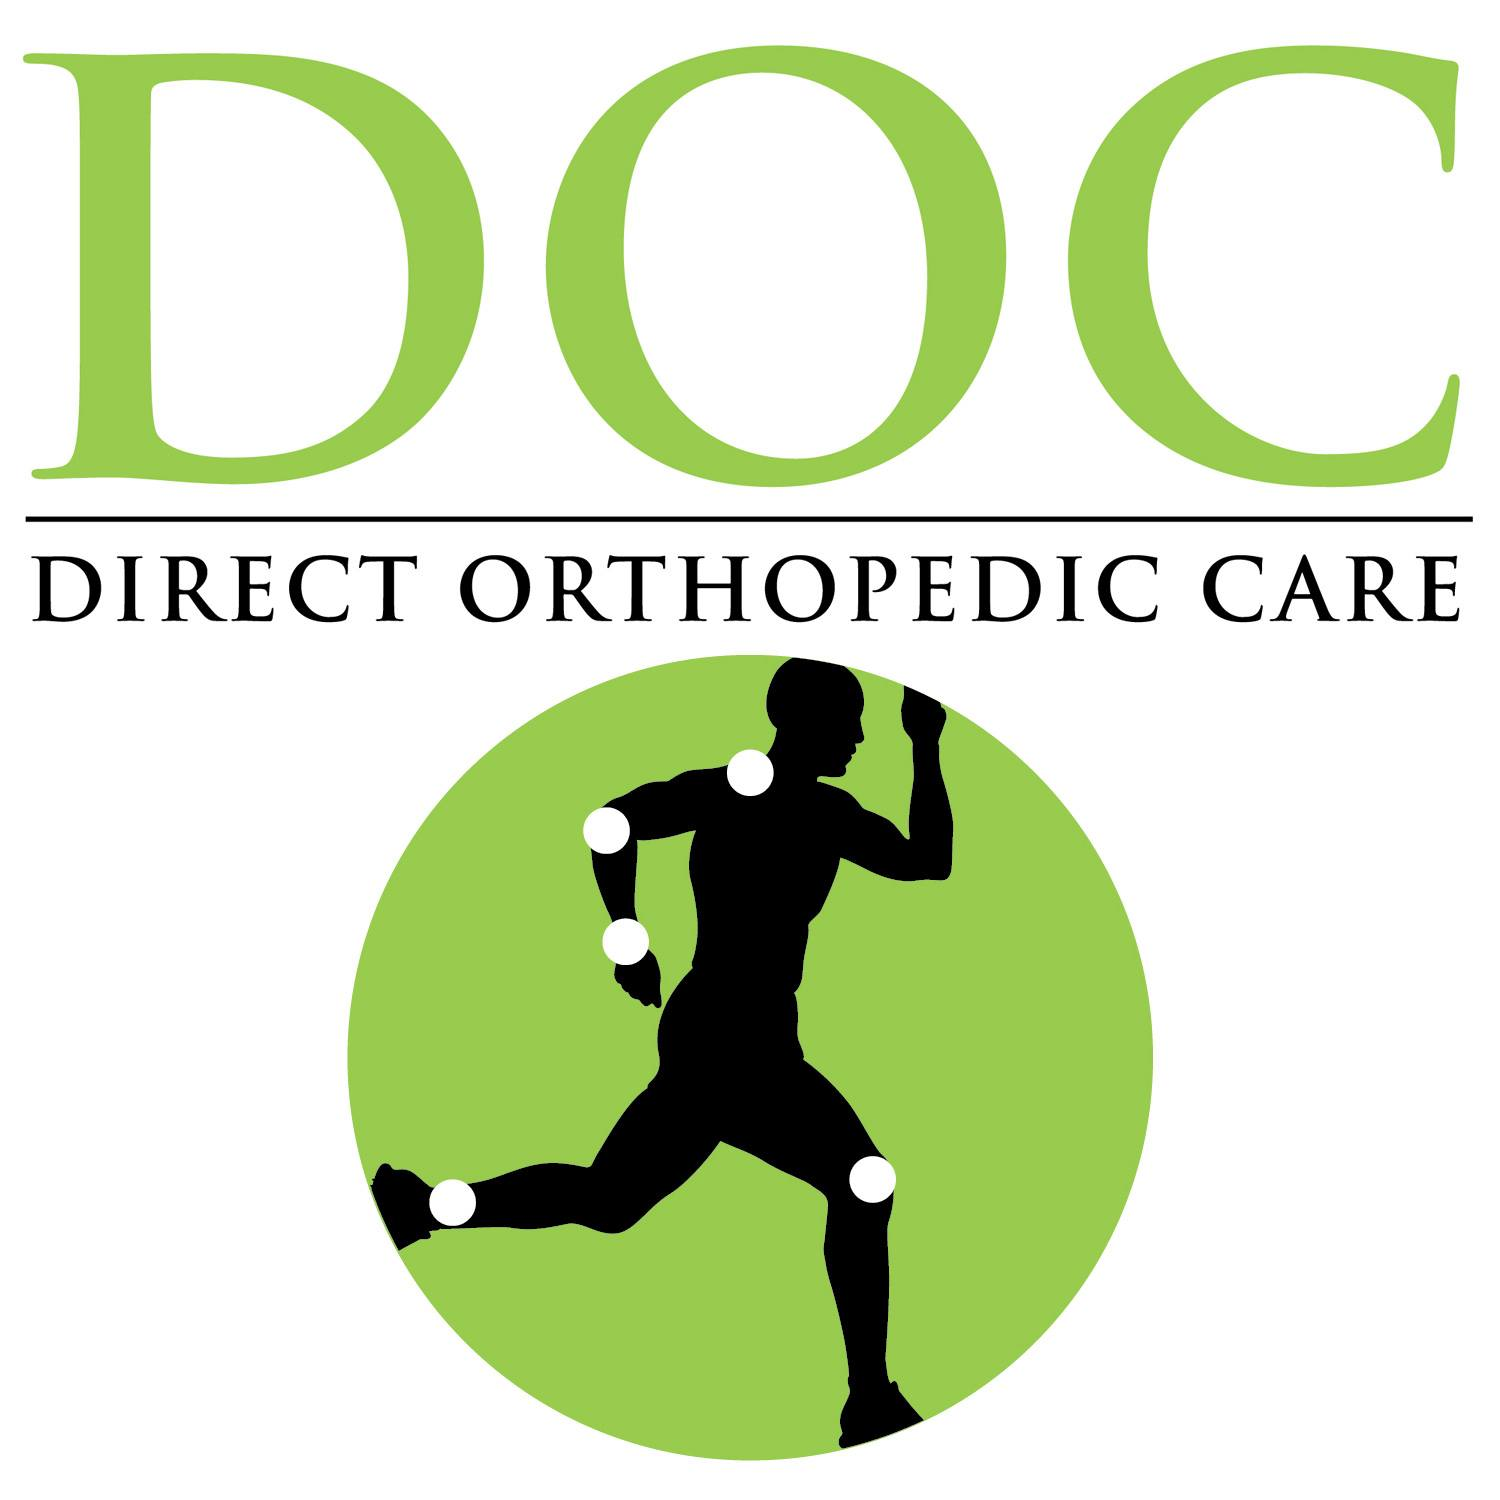 Direct Orthopedic Care logo